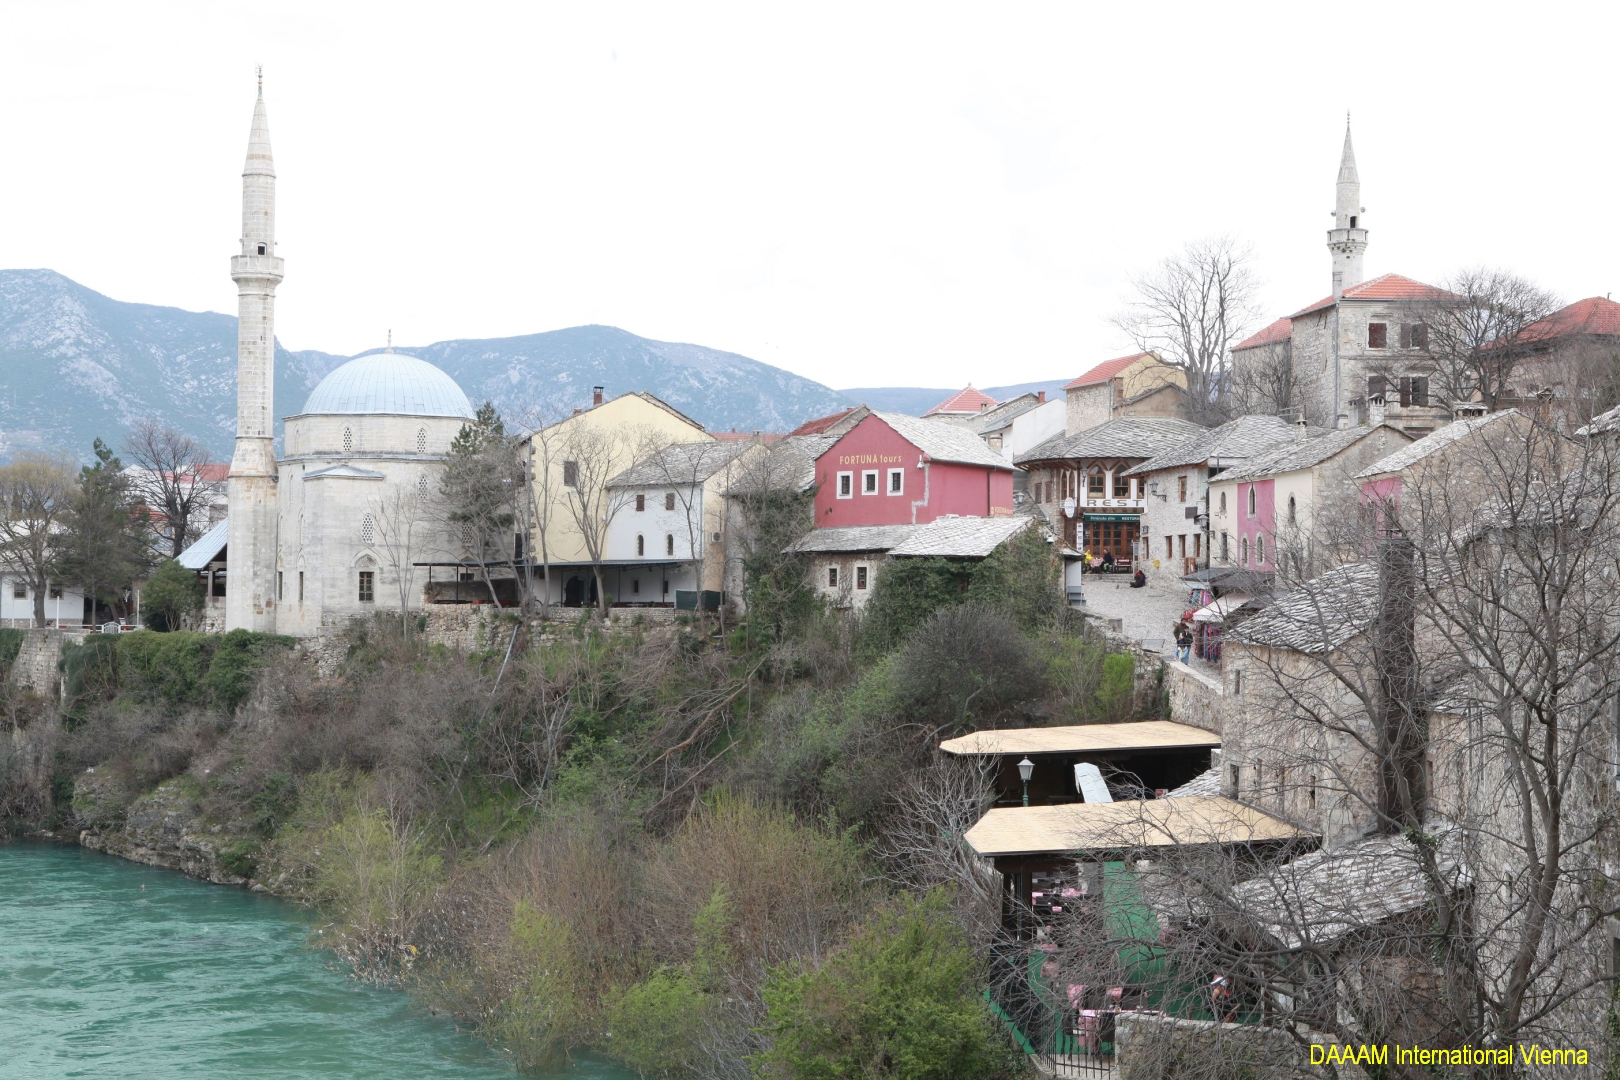 DAAAM_2016_Mostar_01_Magic_City_of_Mostar_076